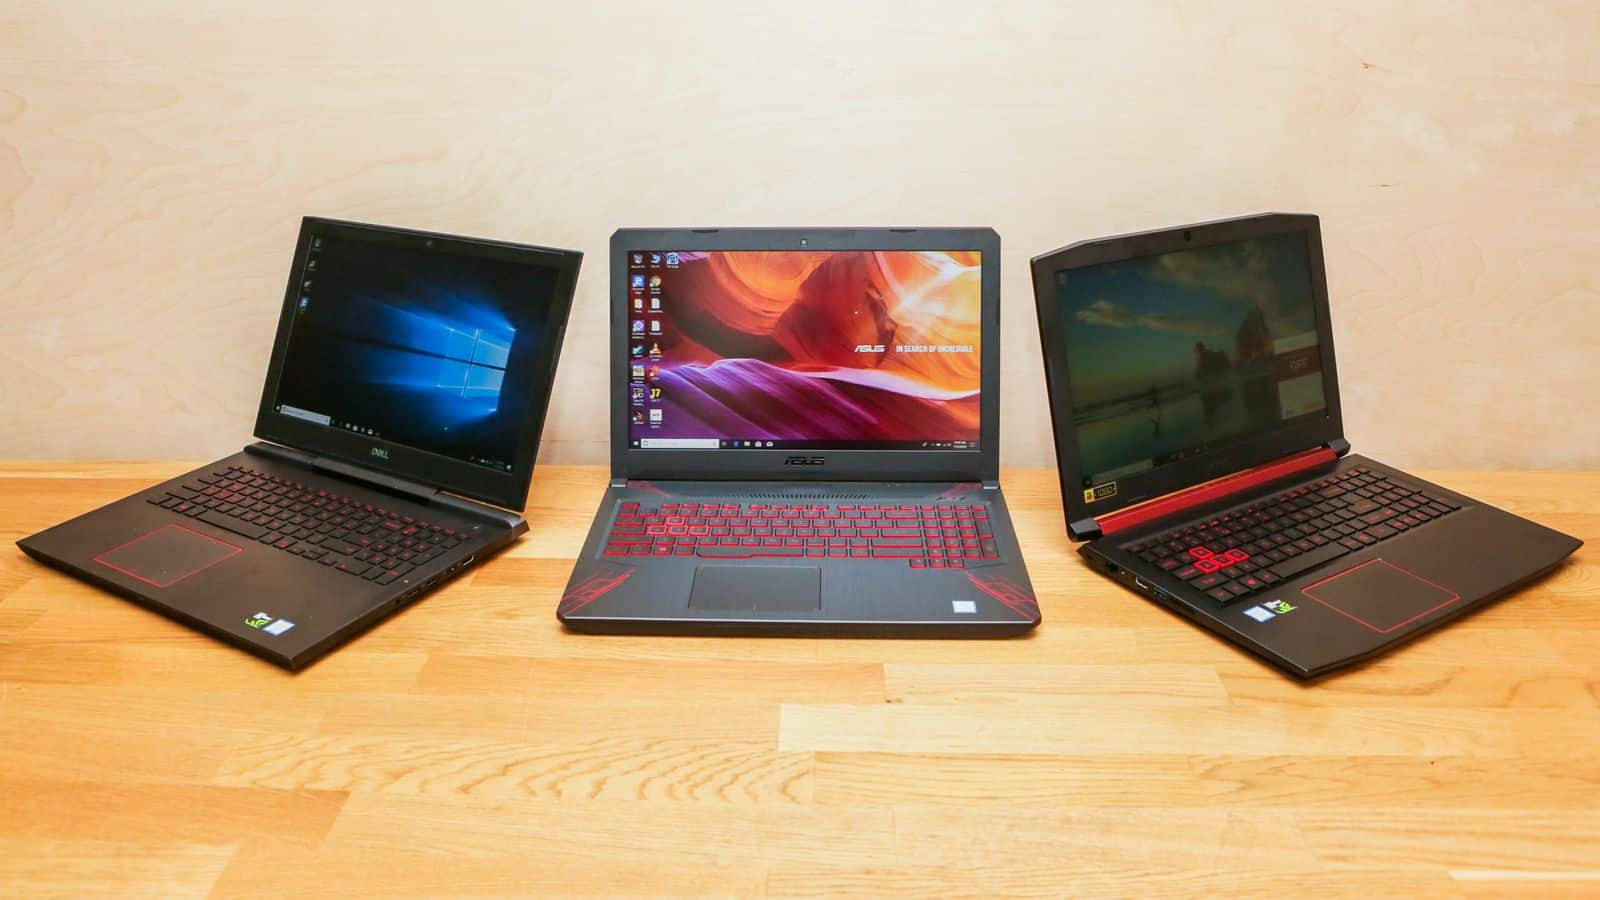 Top 10 Best Laptops Under $1000 [Nov 2020]